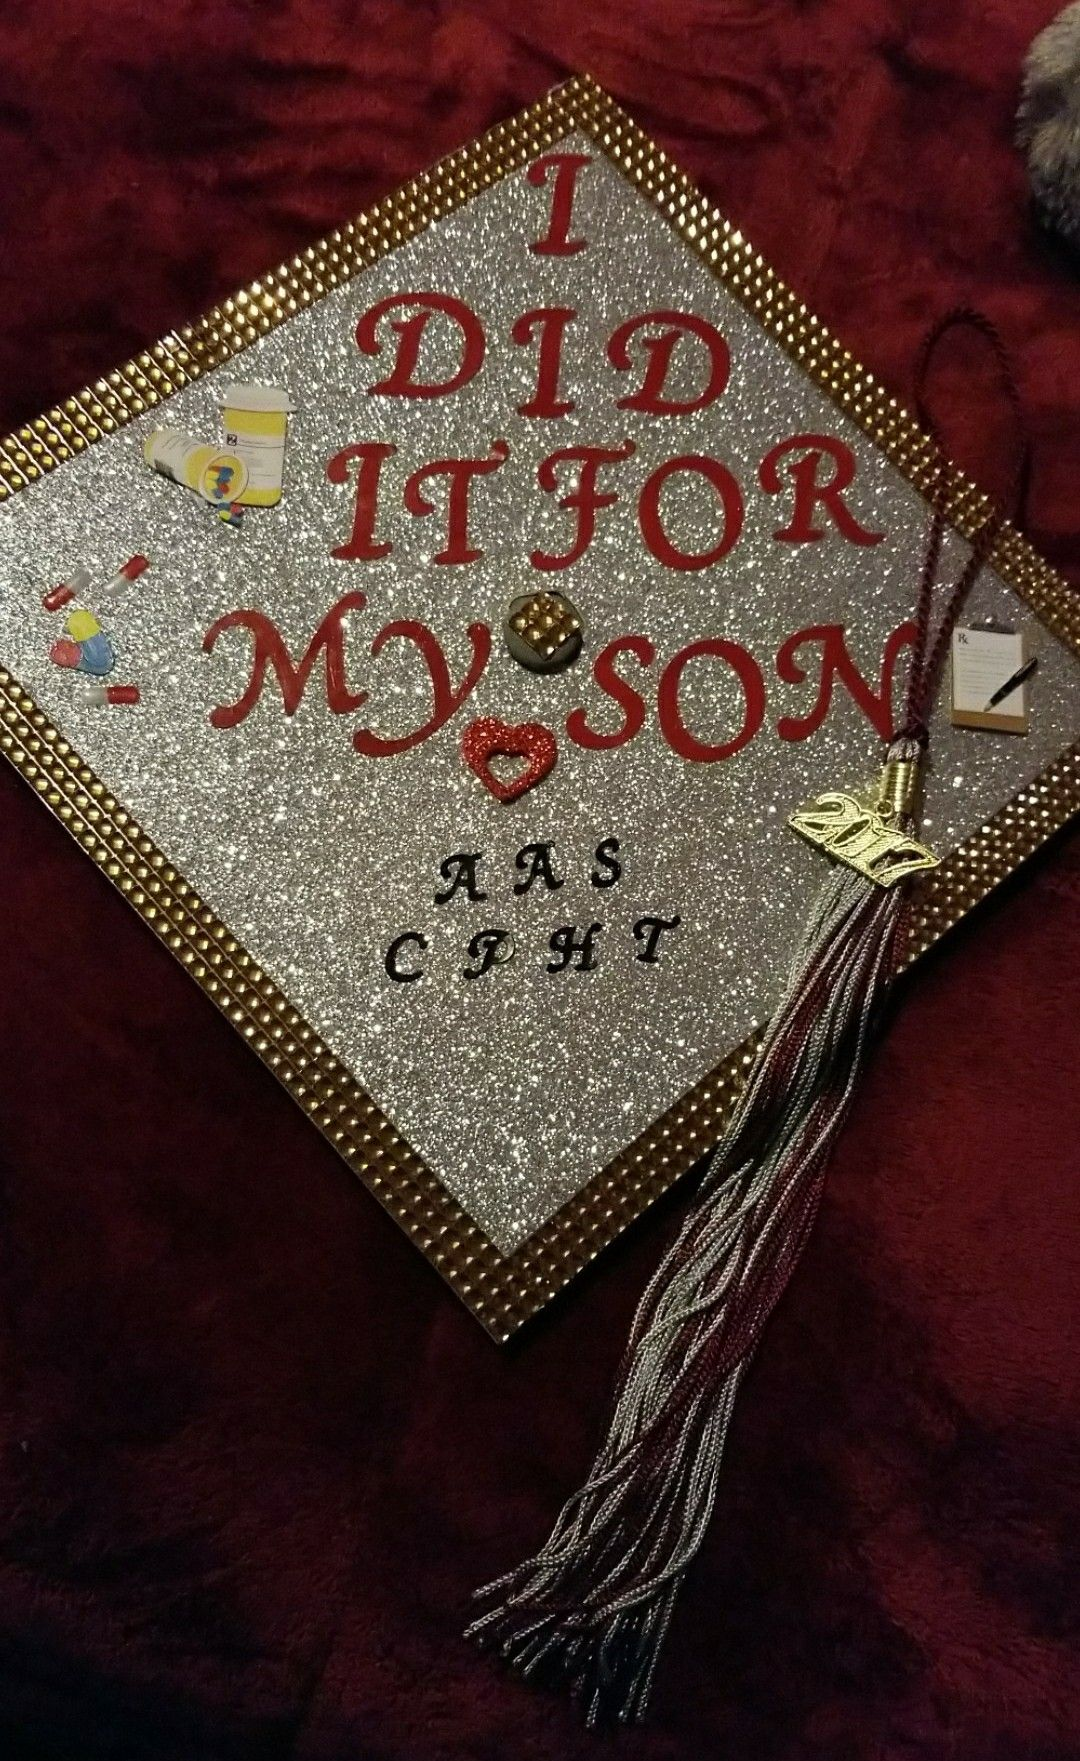 finished my graduation cap.. dedicated to my son because he is the